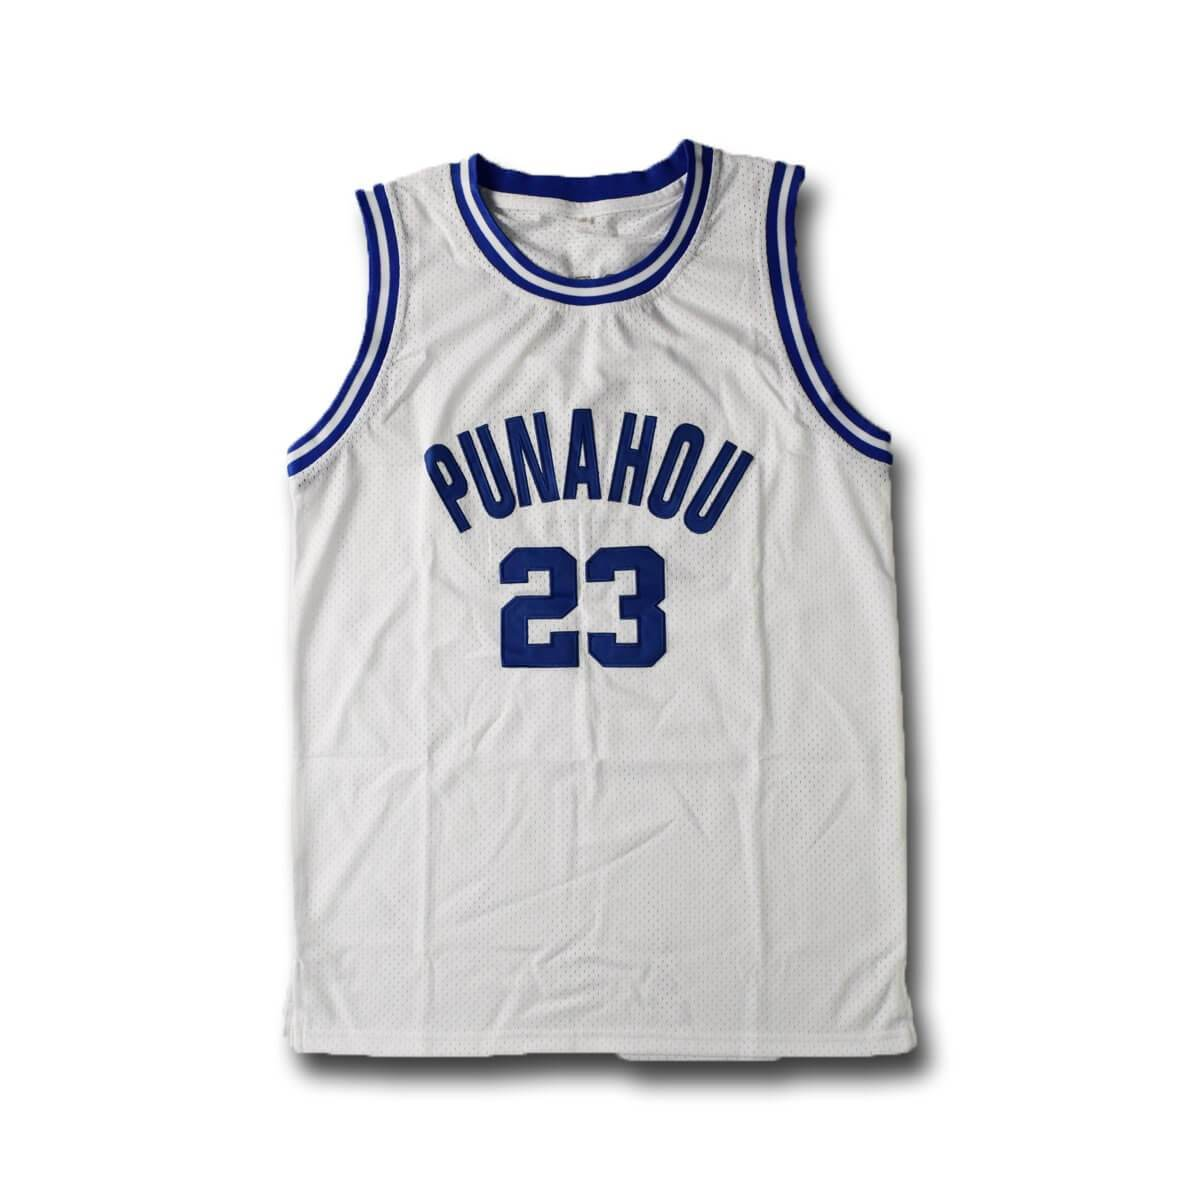 Barack Obama High School Basketball Jersey 23 Punahou